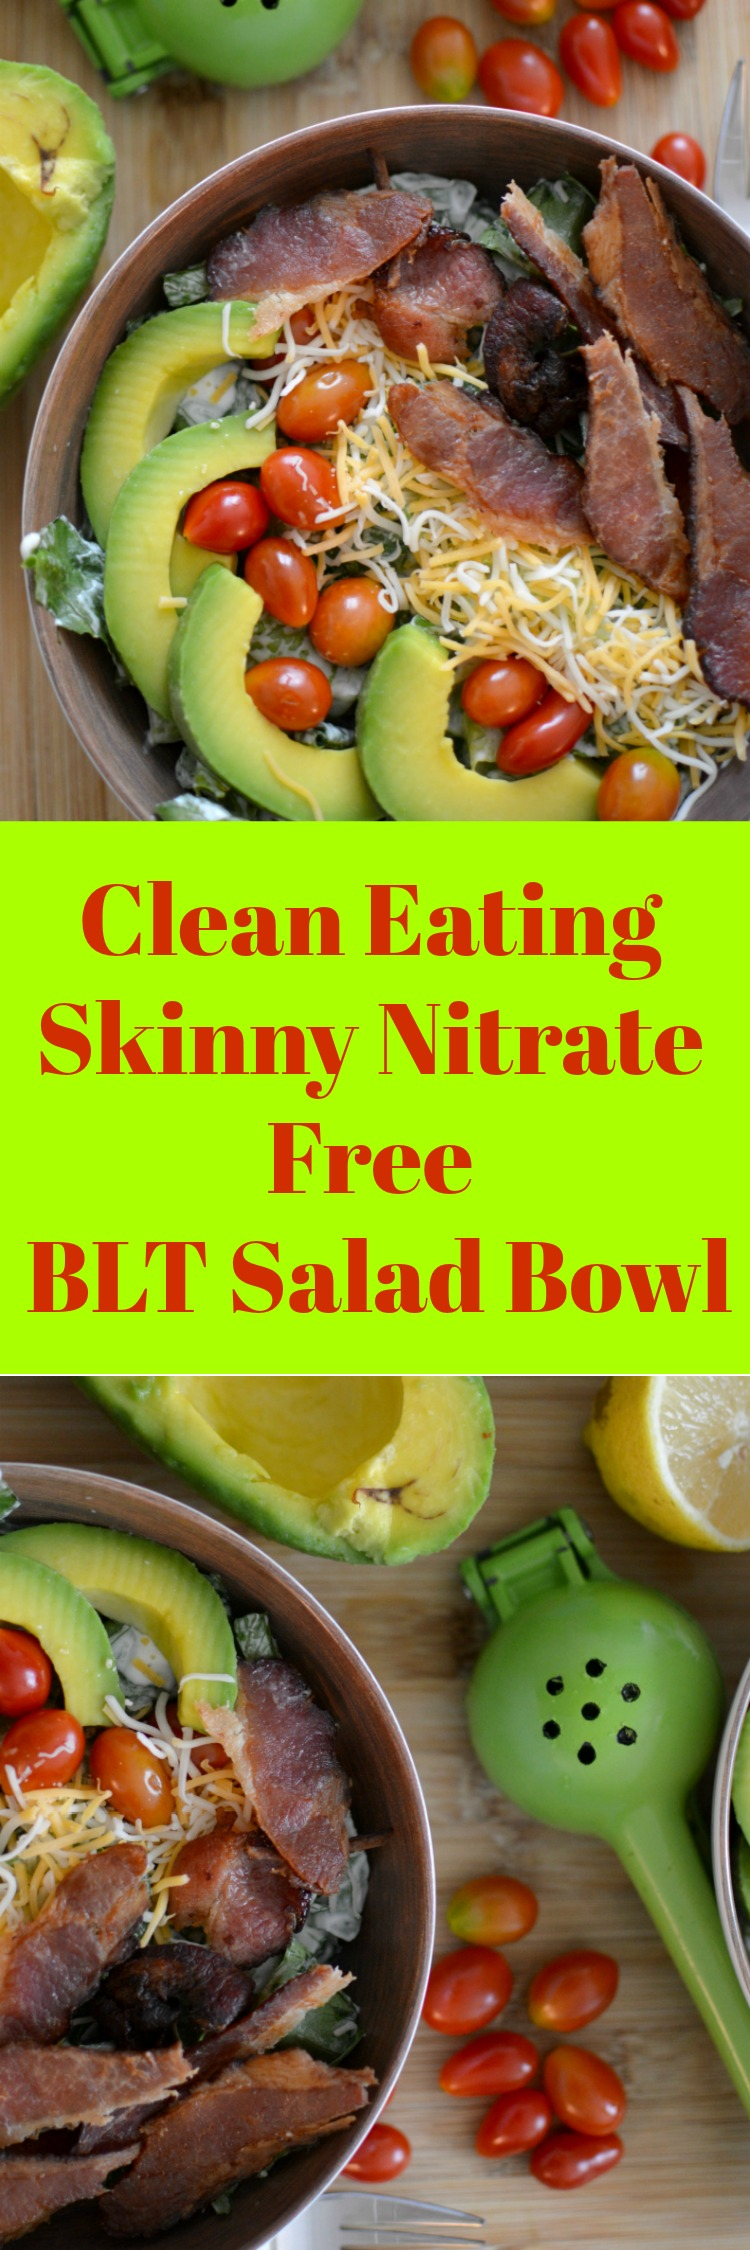 No carbs in this Clean eating BLT salad bowl. You will love this satisfying high protein low carb dish.